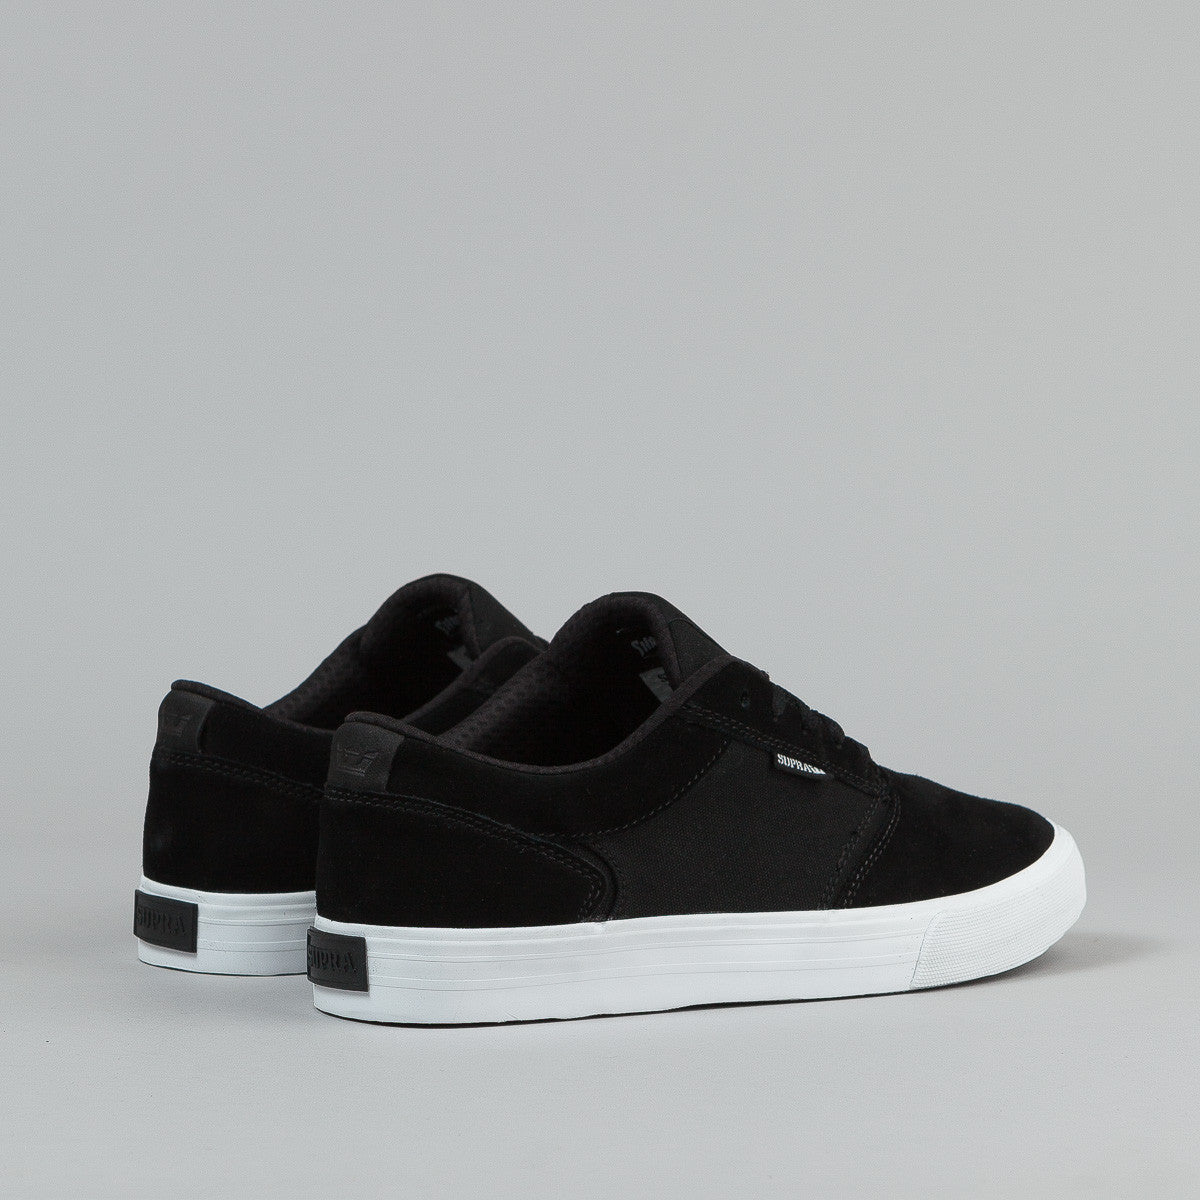 Supra Shredder Shoes Black - White